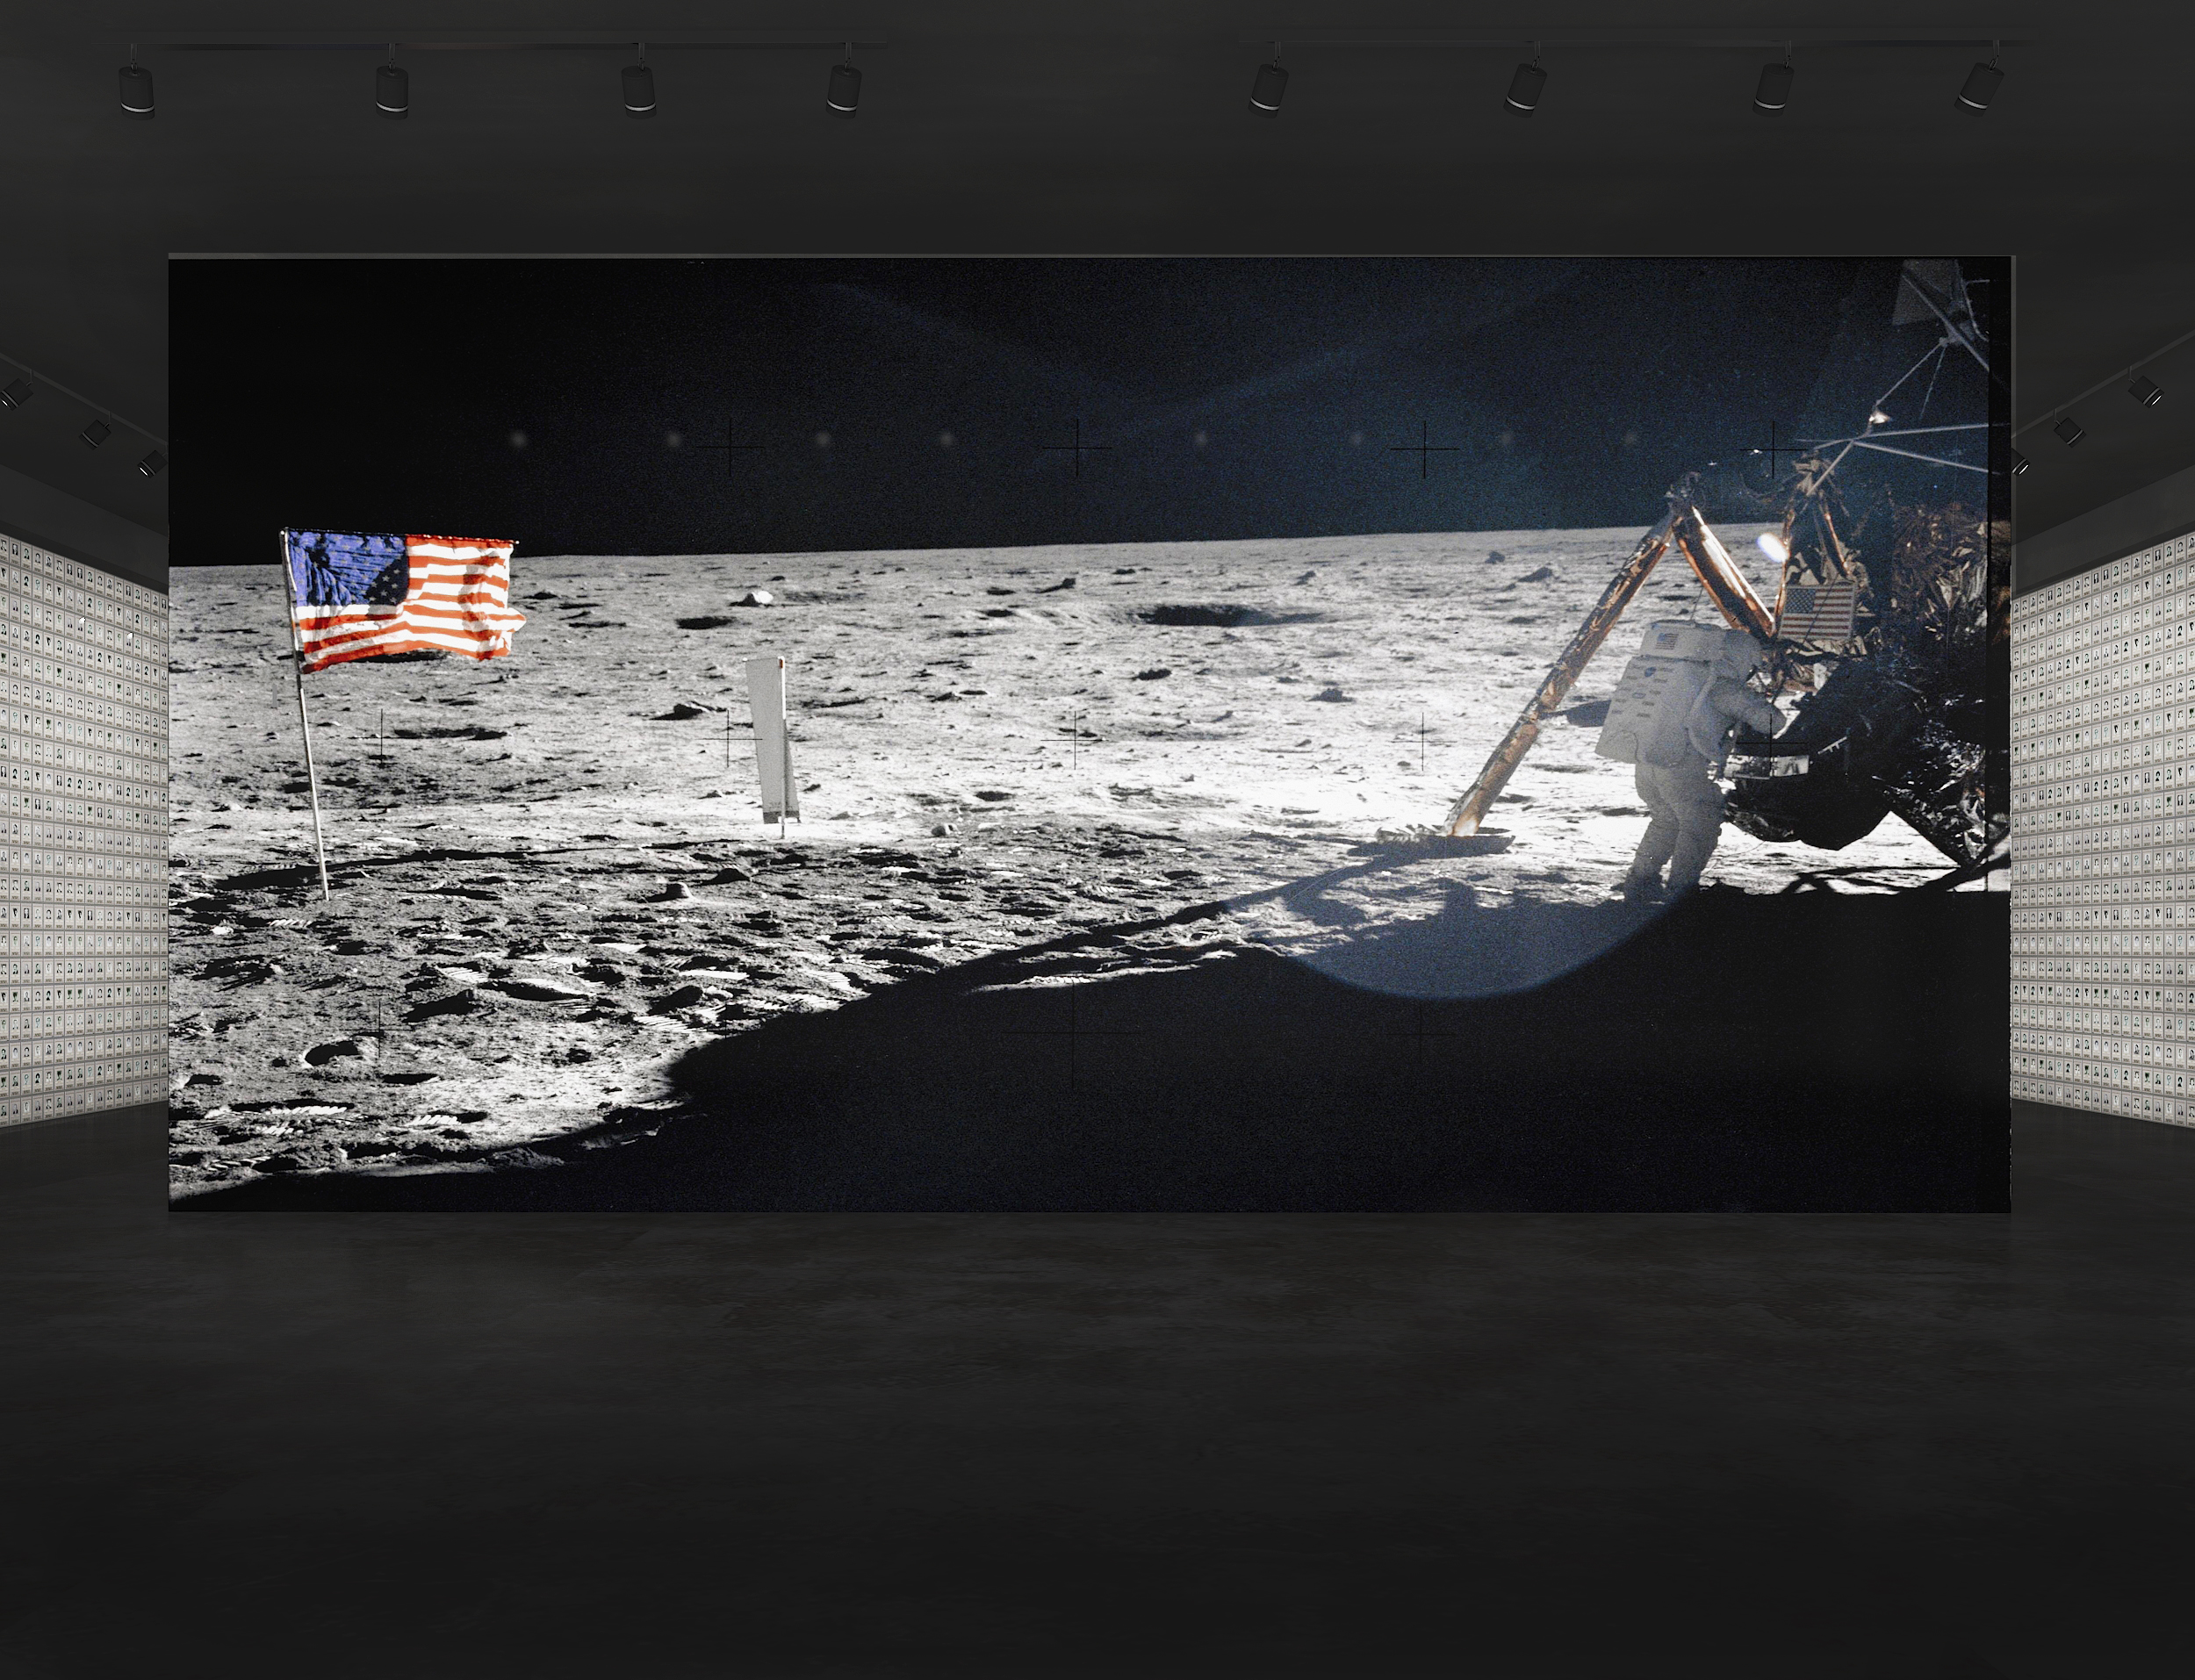 Walking into the Apollo 11 section of the the Heroes & Humans Exhibition you would first see the moon landing and hear the audio of the Apollo 11 crew thanking all the people who made the Apollo 11 mission possible.